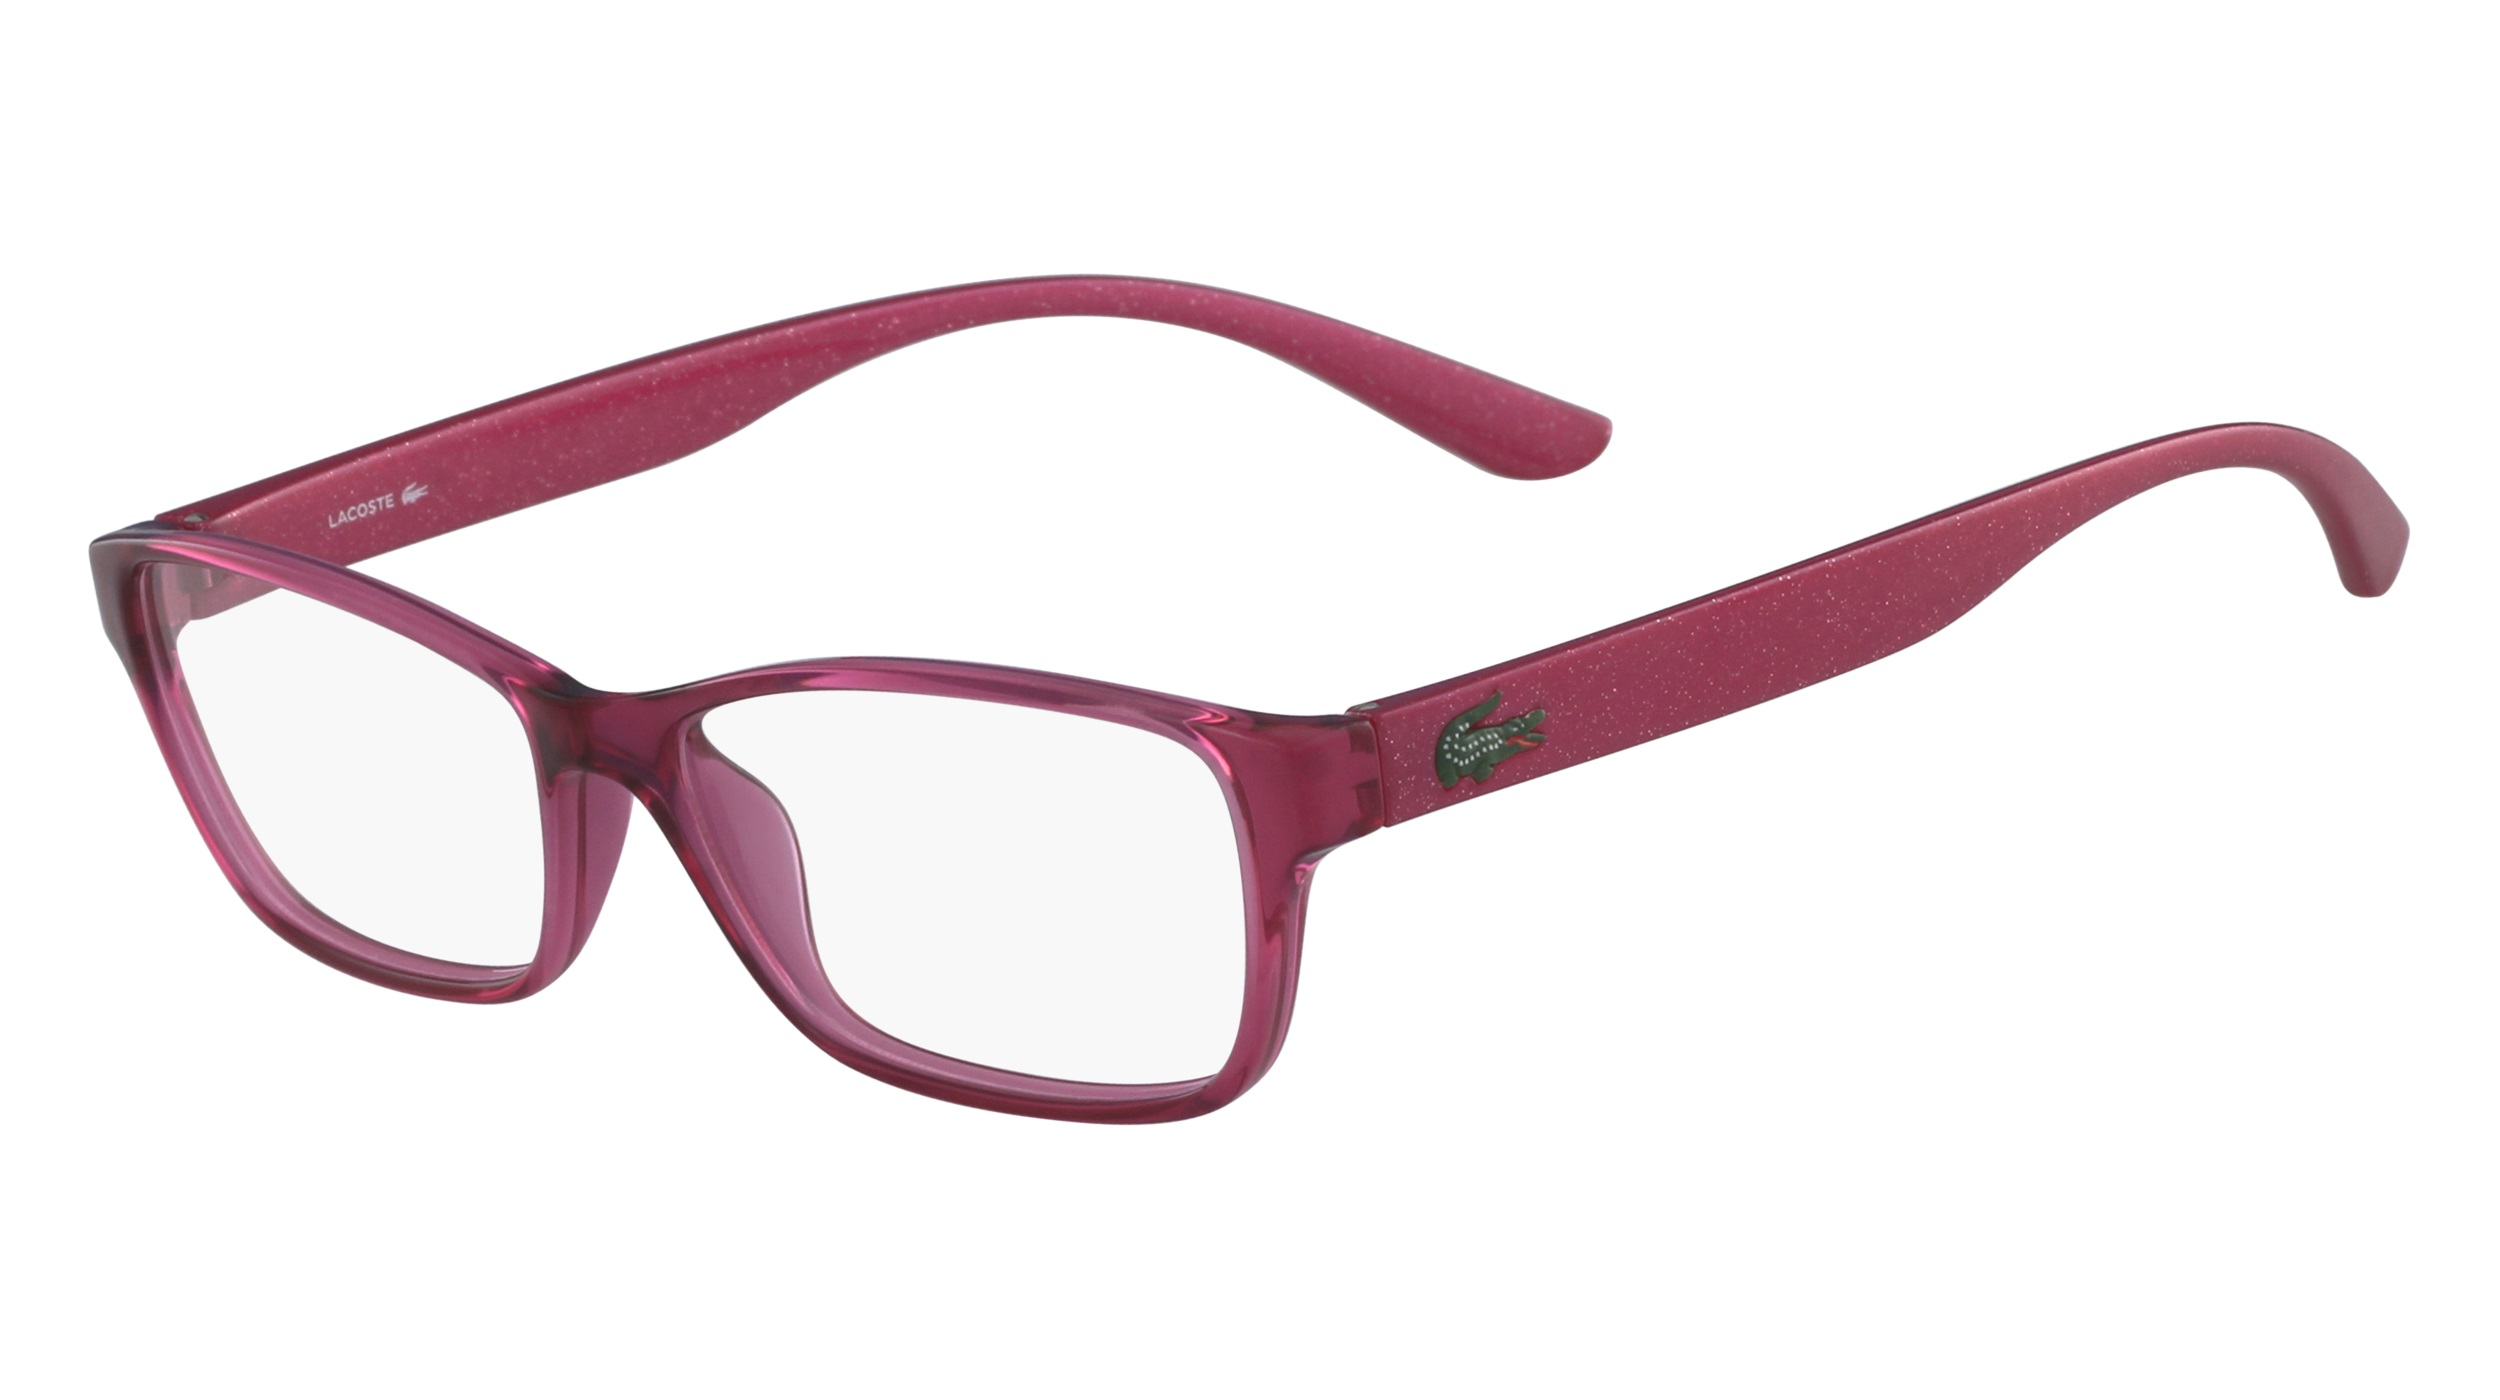 7f30eab518 Kids Glasses - Fuchsia - Optiwow